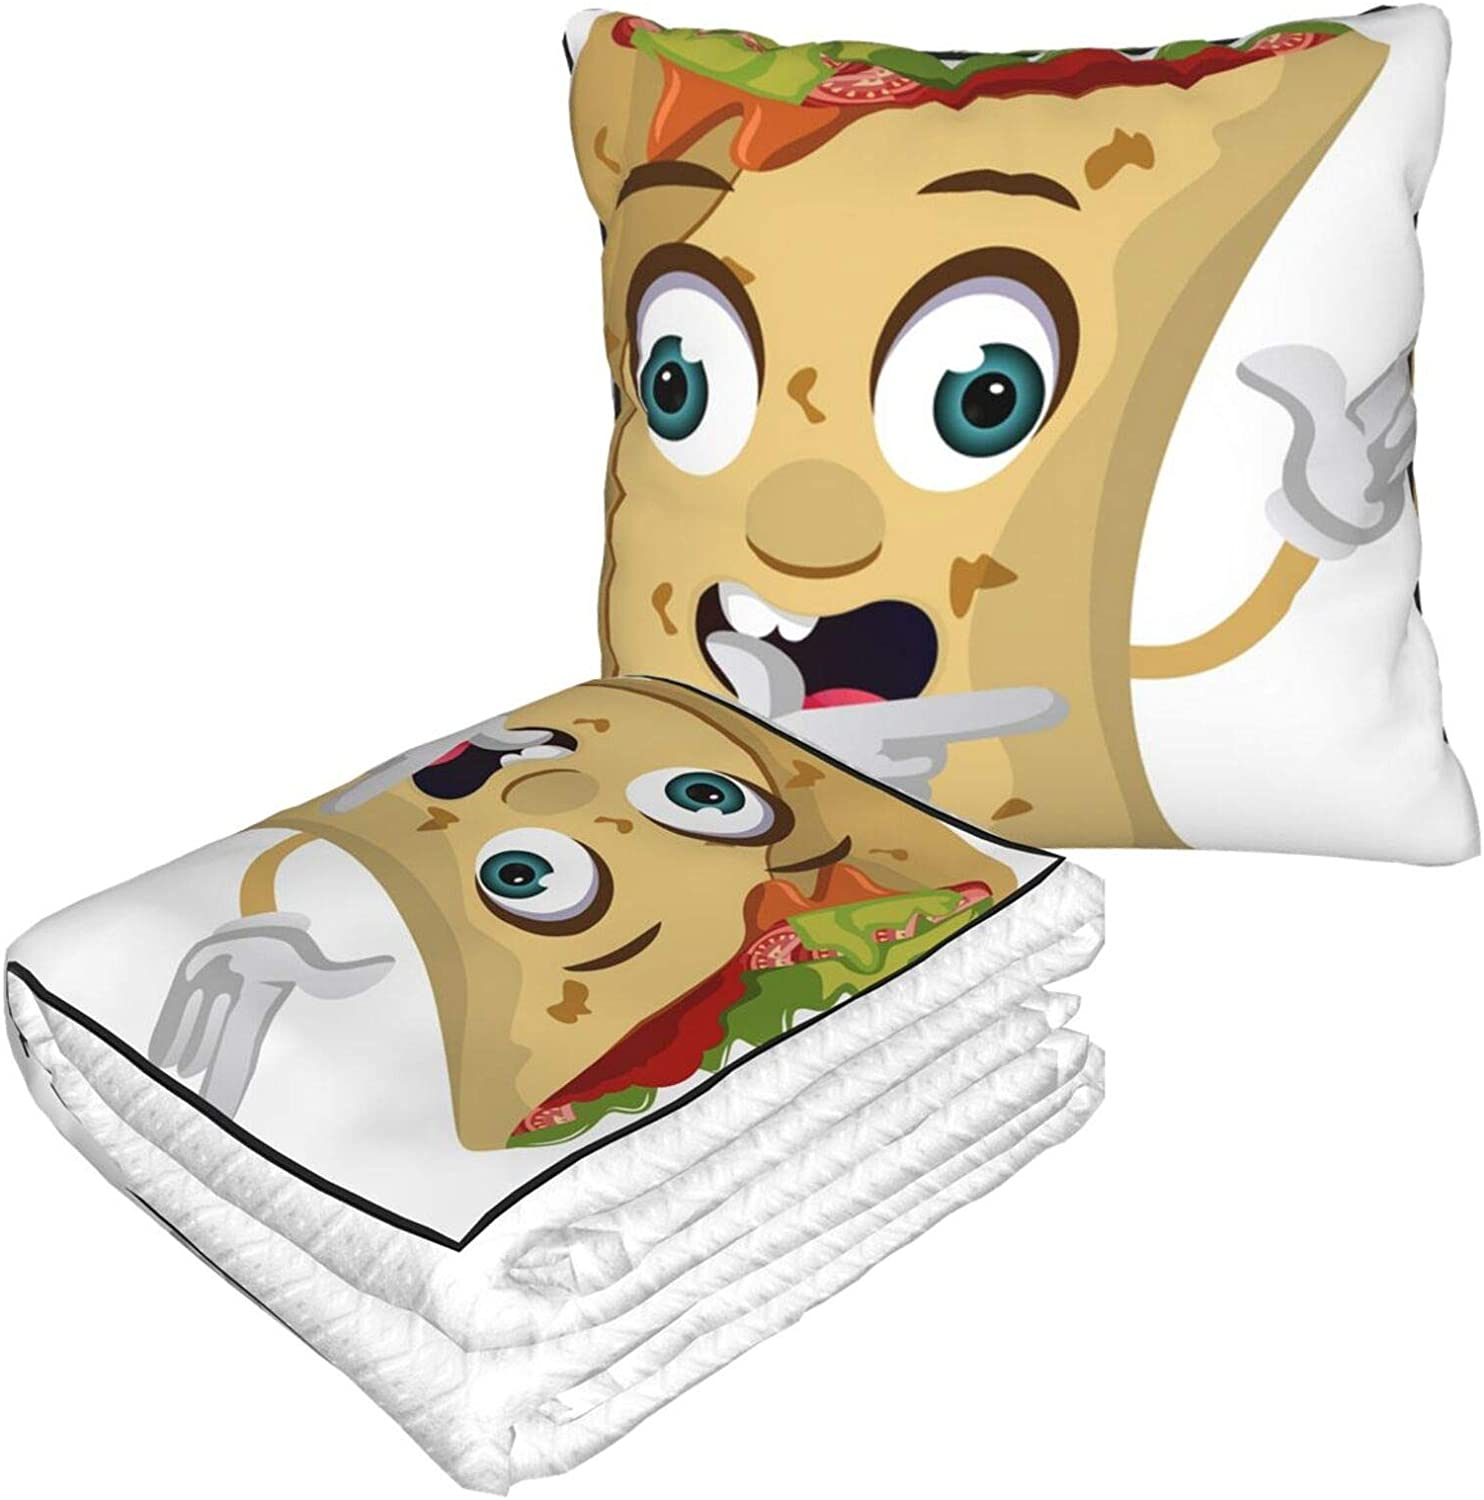 Funny Cartoon Cute Burrito Food Travel Blanket and Pillow | Warm Soft Fleece 2-in-1 Combo Blanket for Airplane, Camping, Car Trips | Large Compact Blanket Set